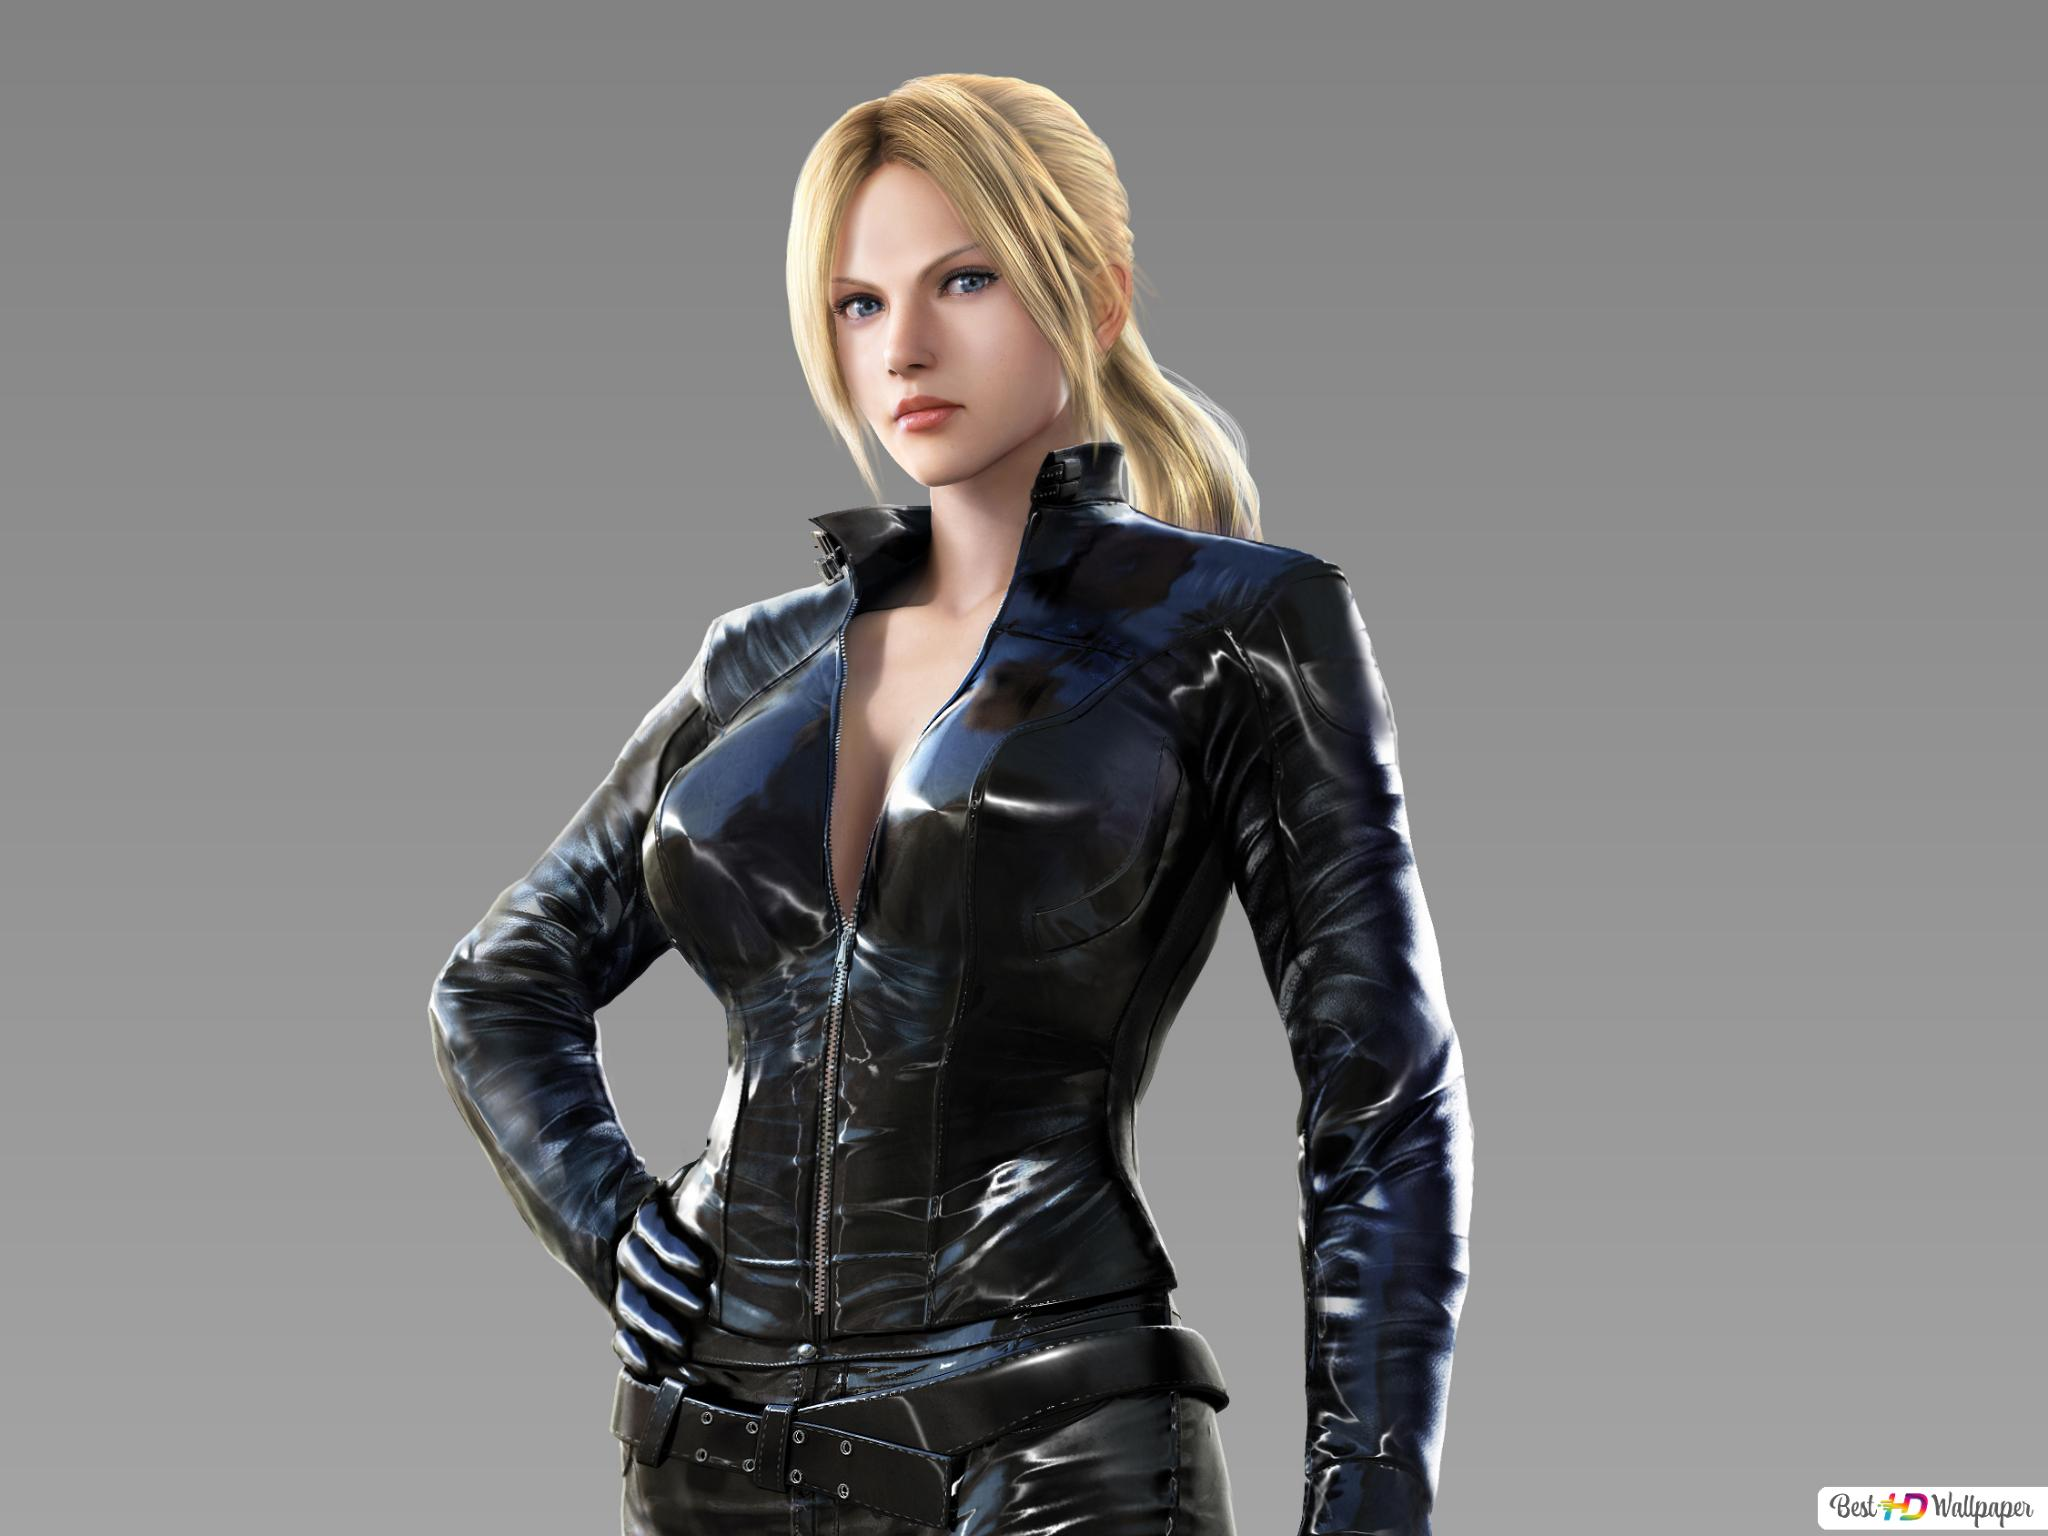 Tekken Blood Vengeance Nina Williams Hd Wallpaper Download